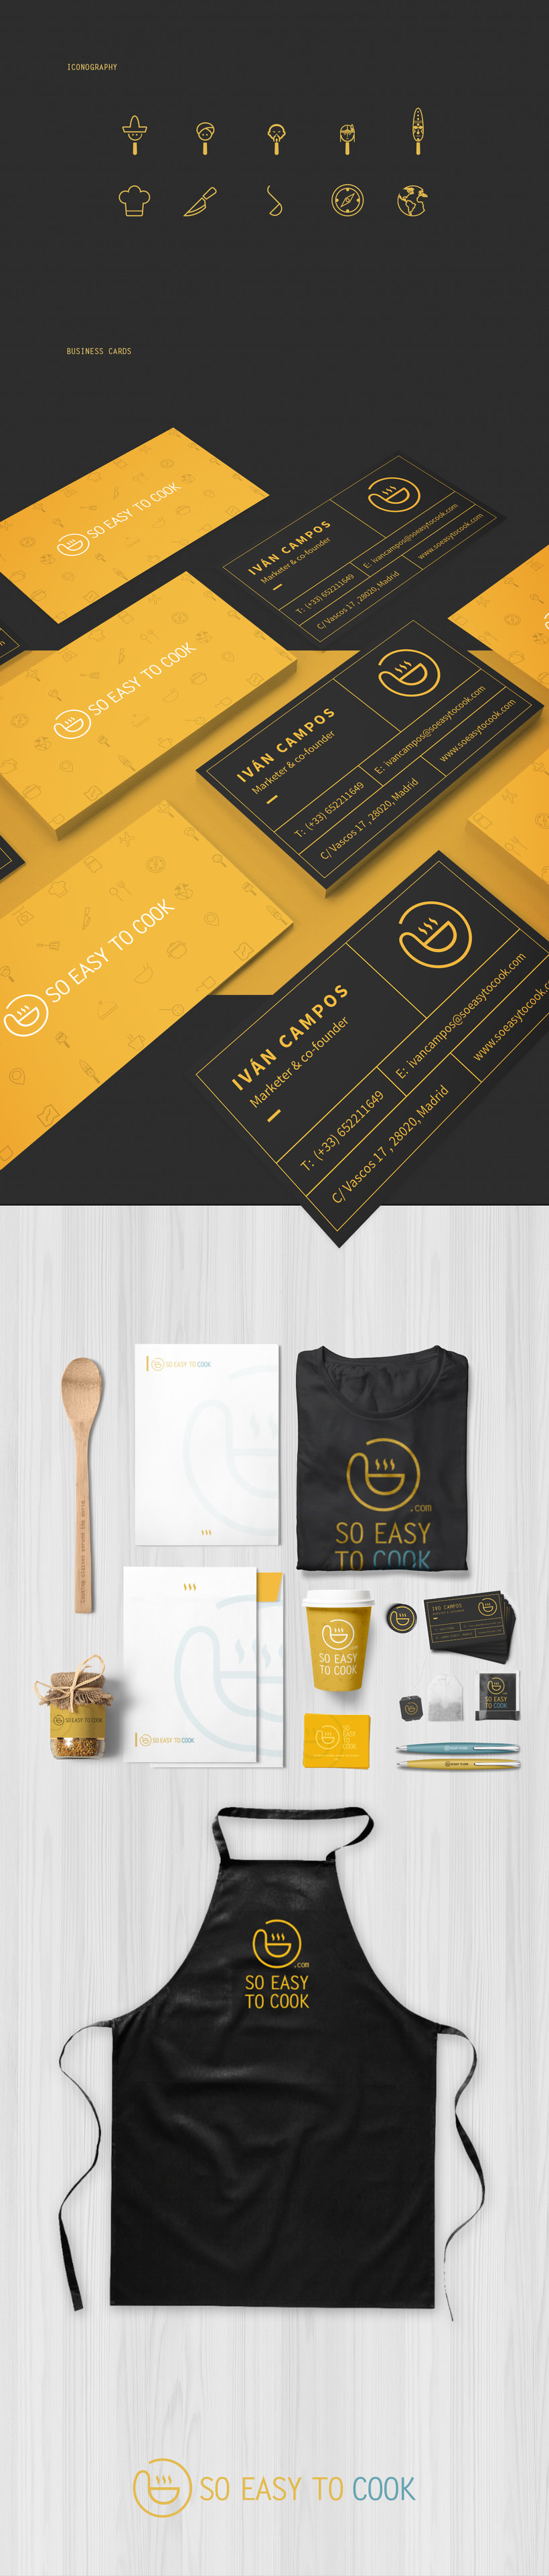 So Easy To Cook - Branding 0